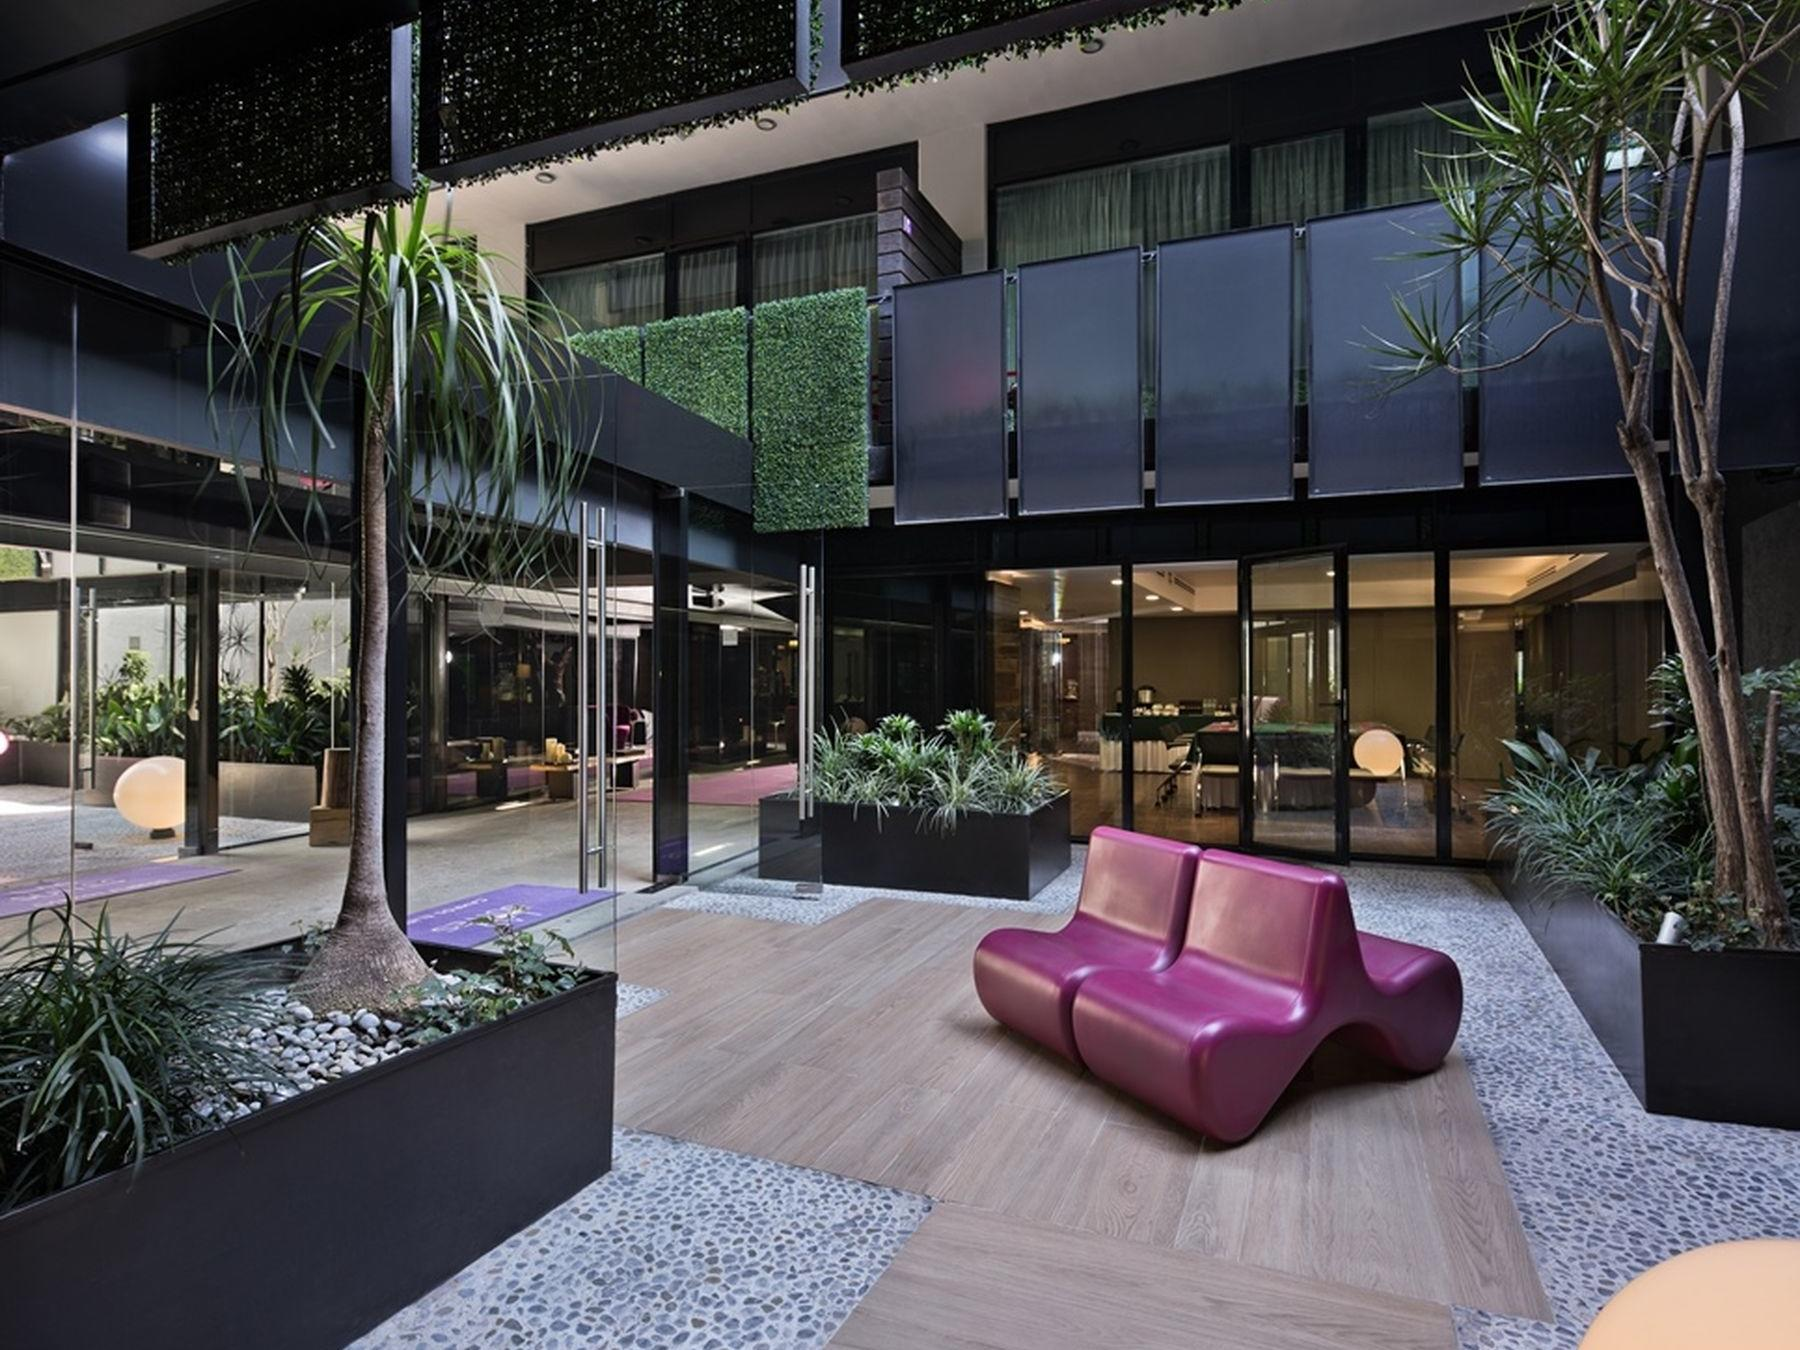 Las Suites Hotels In Polanco Mexico City